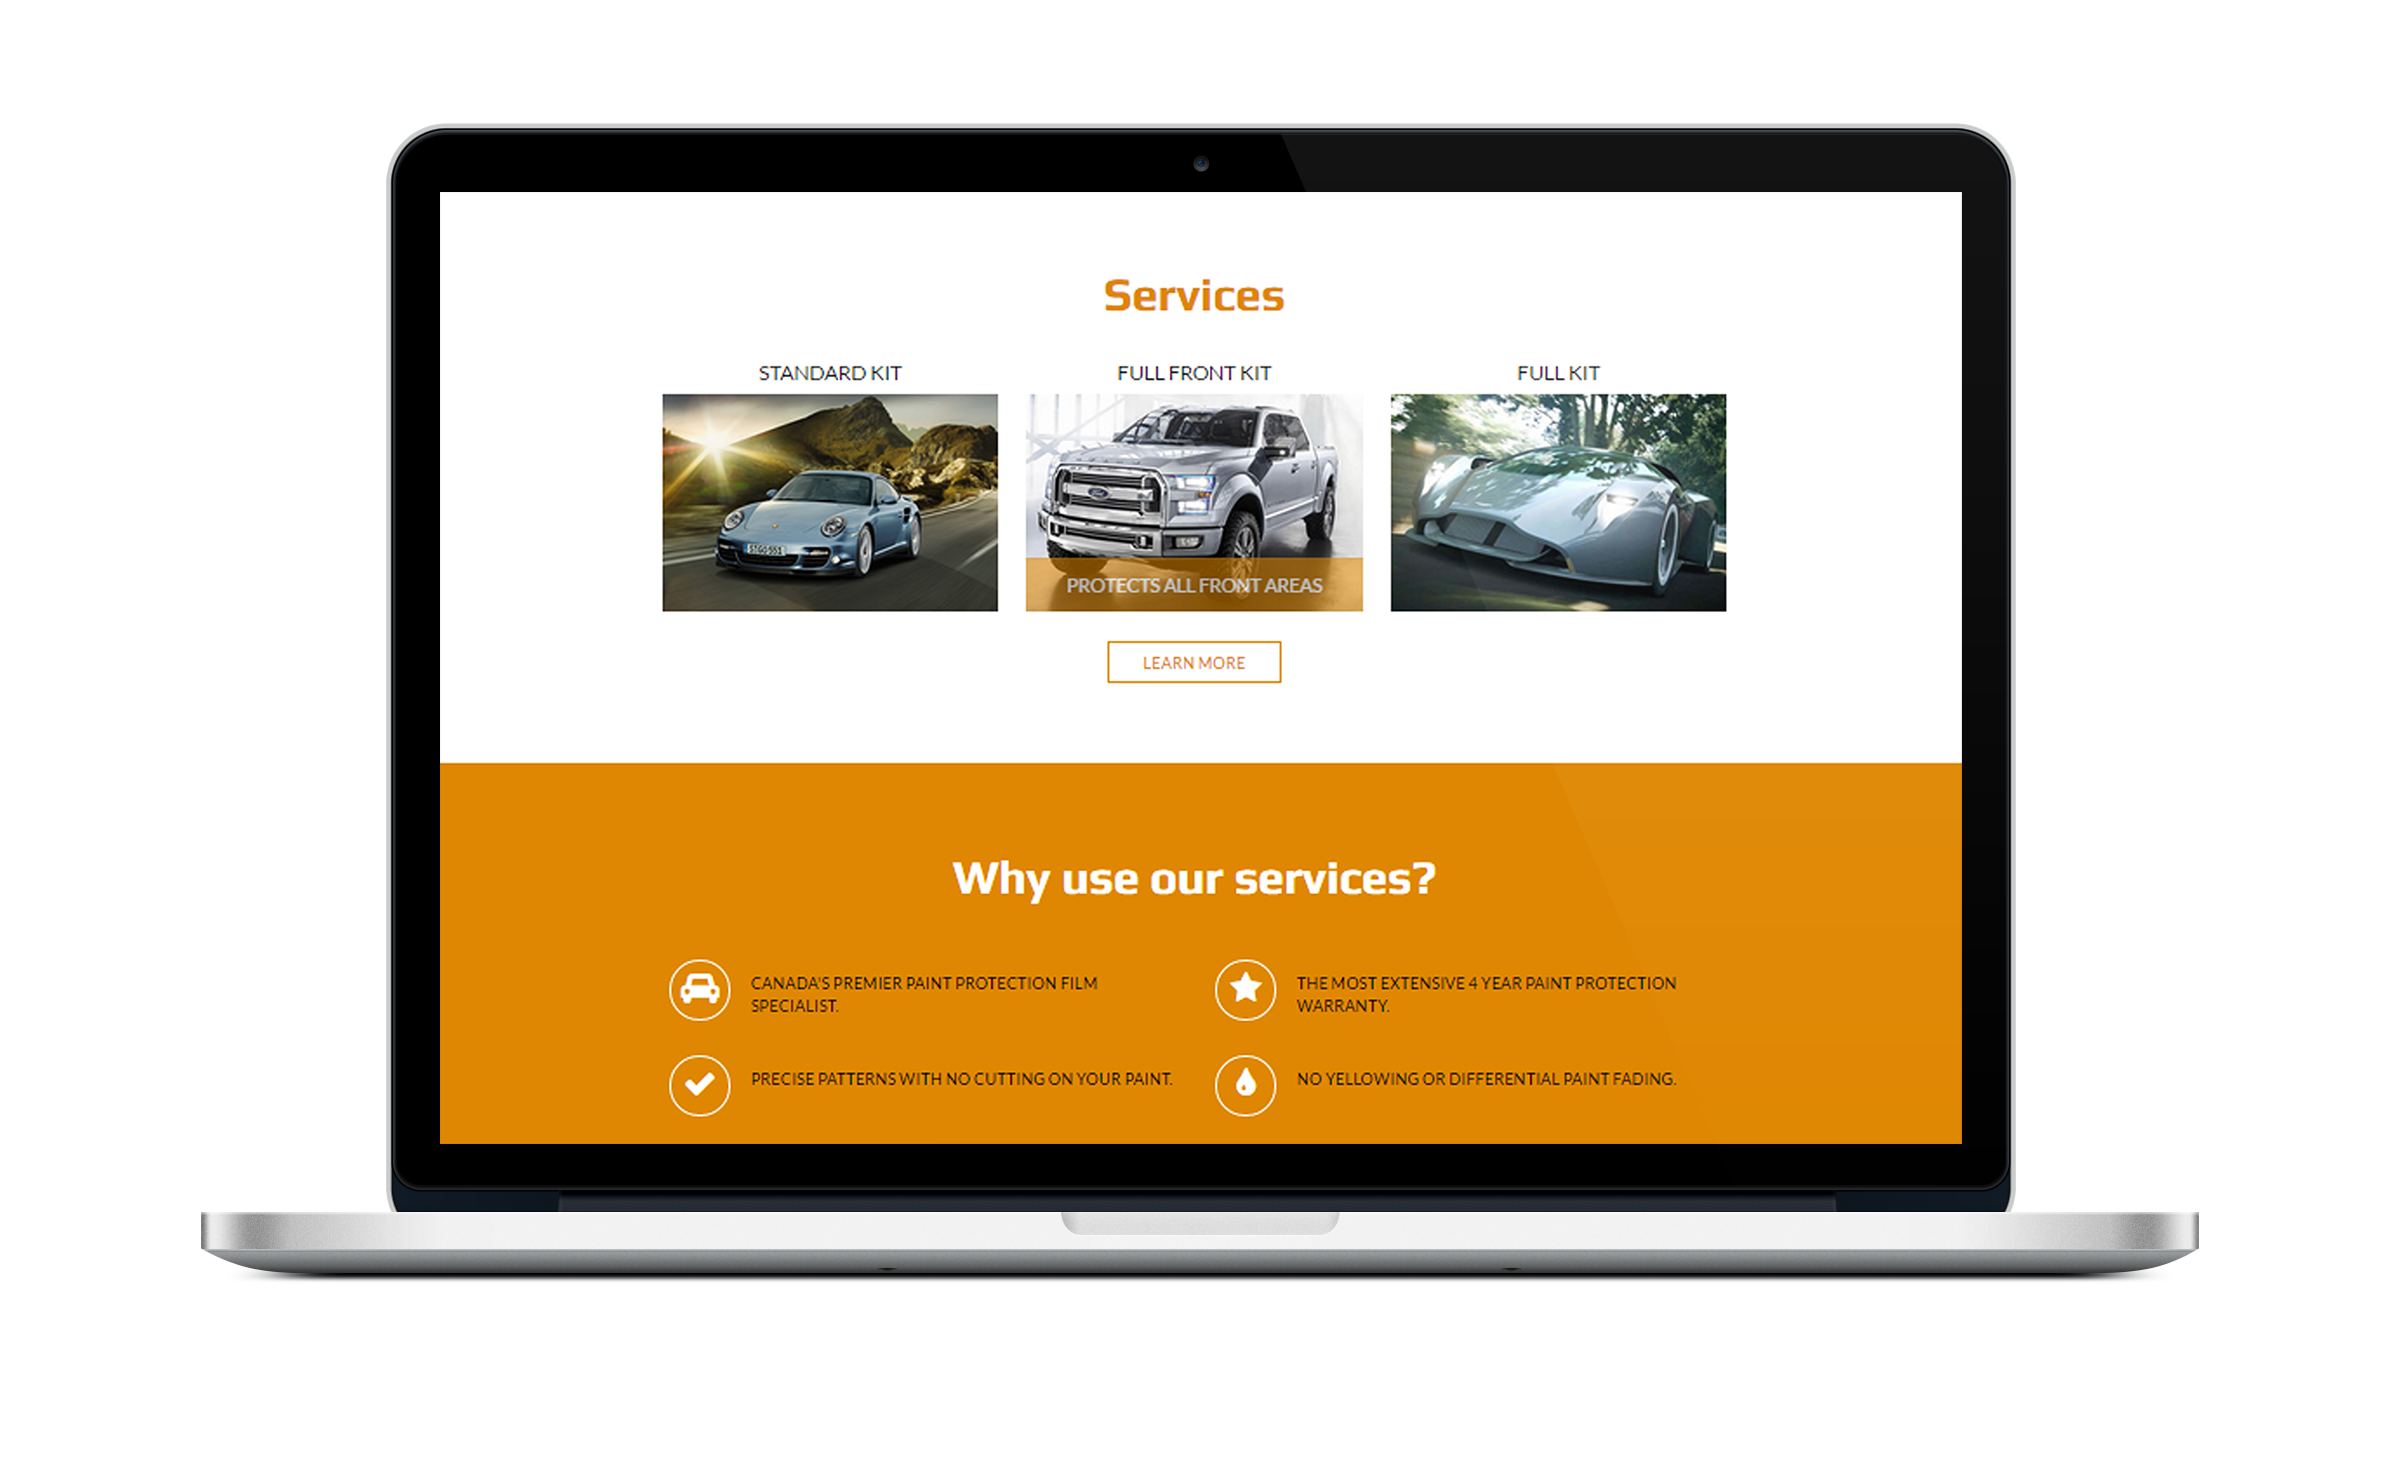 Services page let your customers know what your business does in a format that is simple and pleasing to the eye.